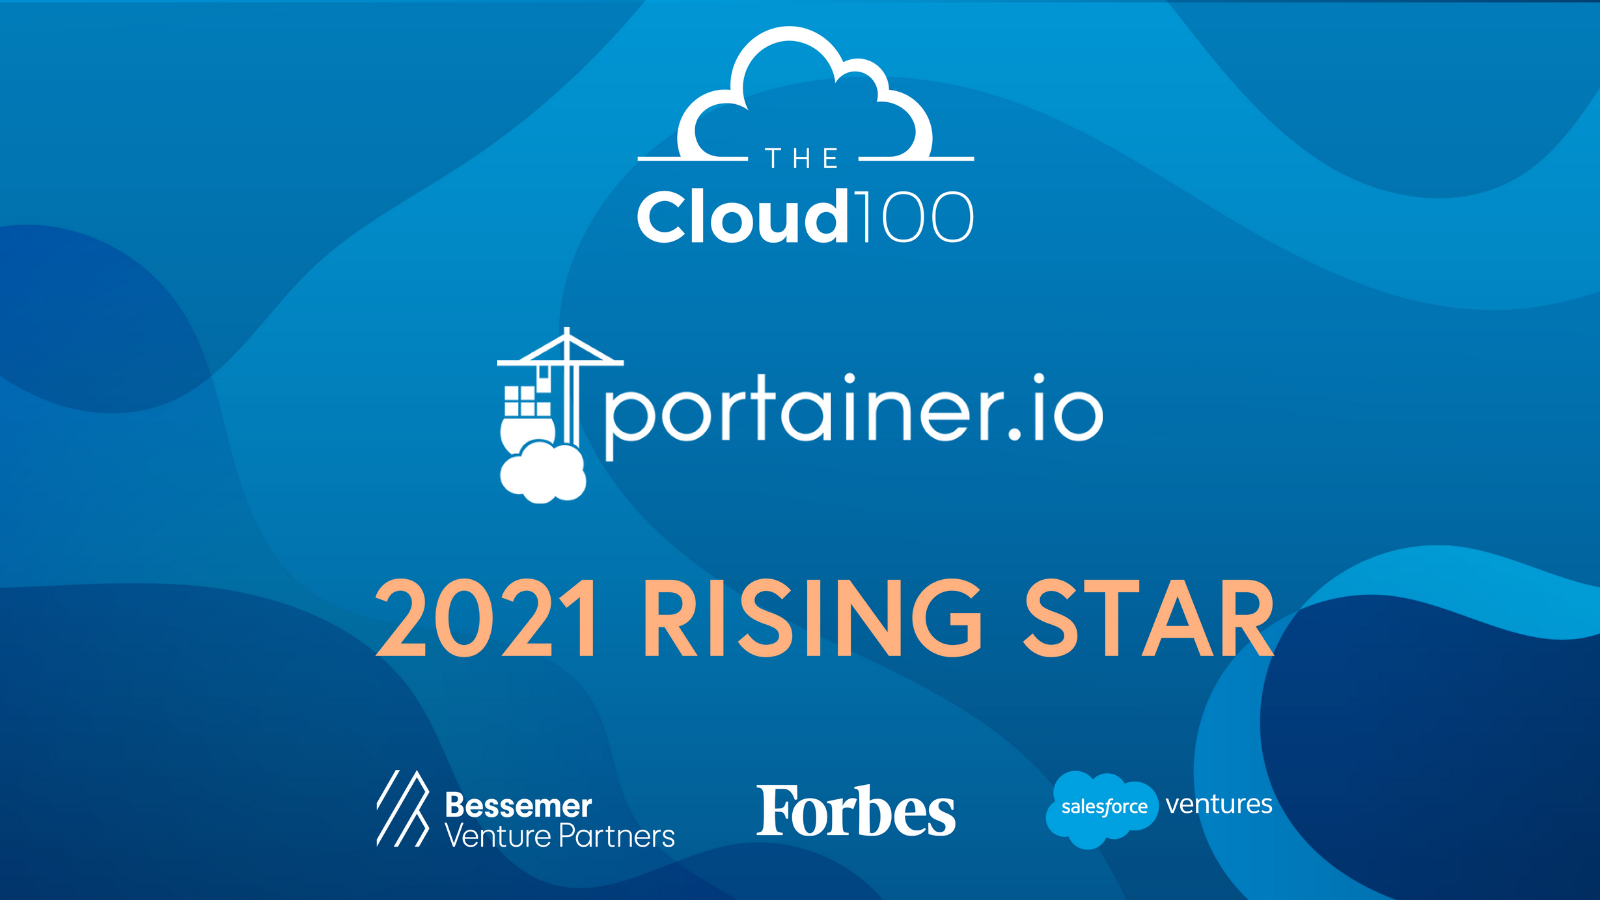 Portainer.io recognized as 'rising star' in Forbes' 2021 CLOUD 100 list